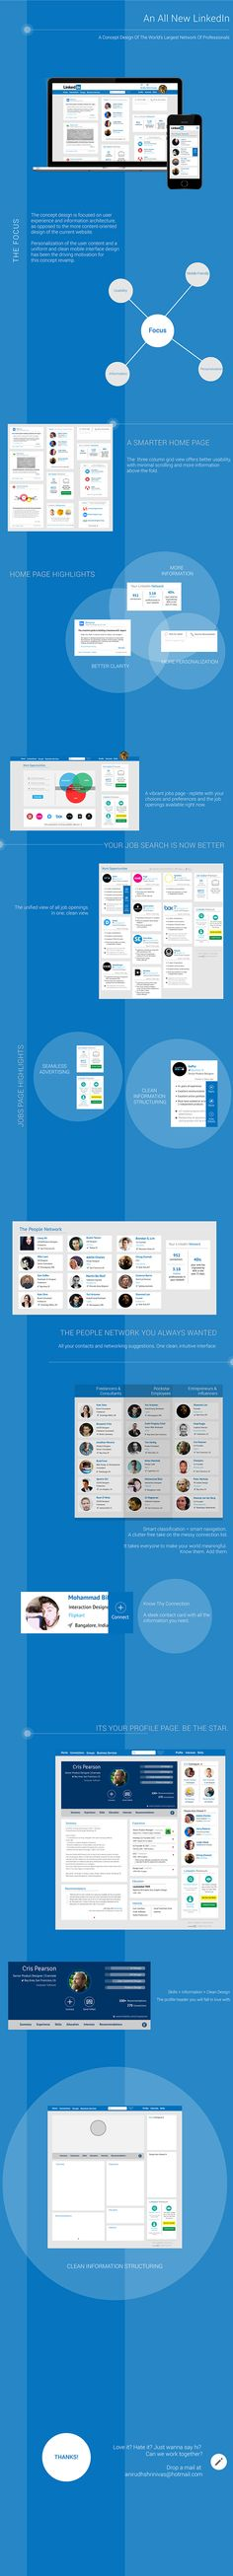 LinkedIn Redesign Concept - An Alternate Perspective on Behance